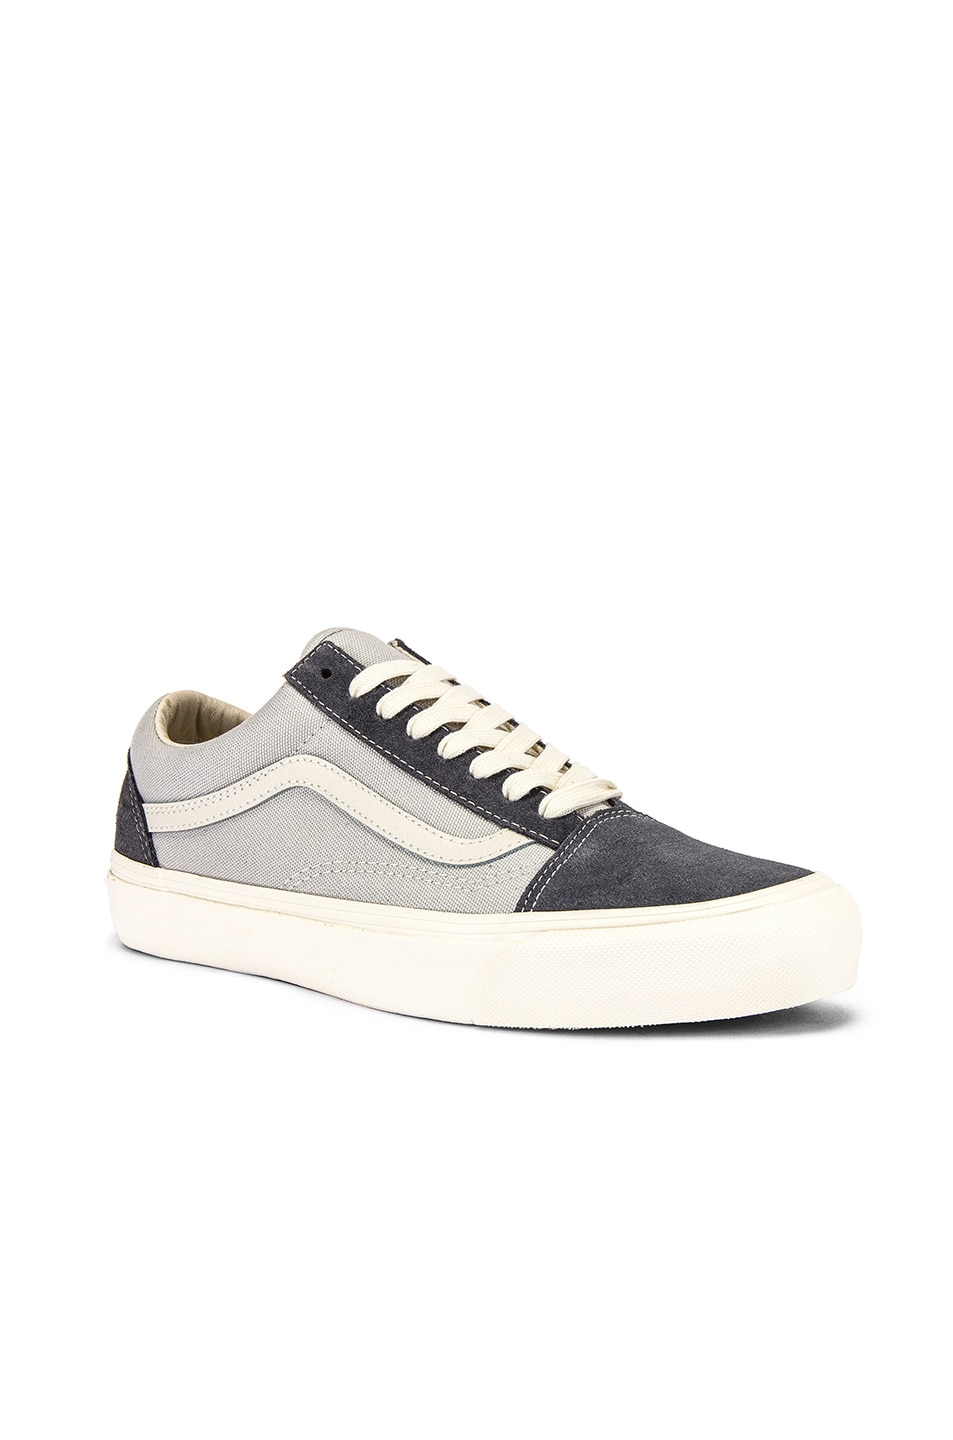 Image 2 of Vans Vault OG Style Old Skool LX in Pearl Gray & Multi